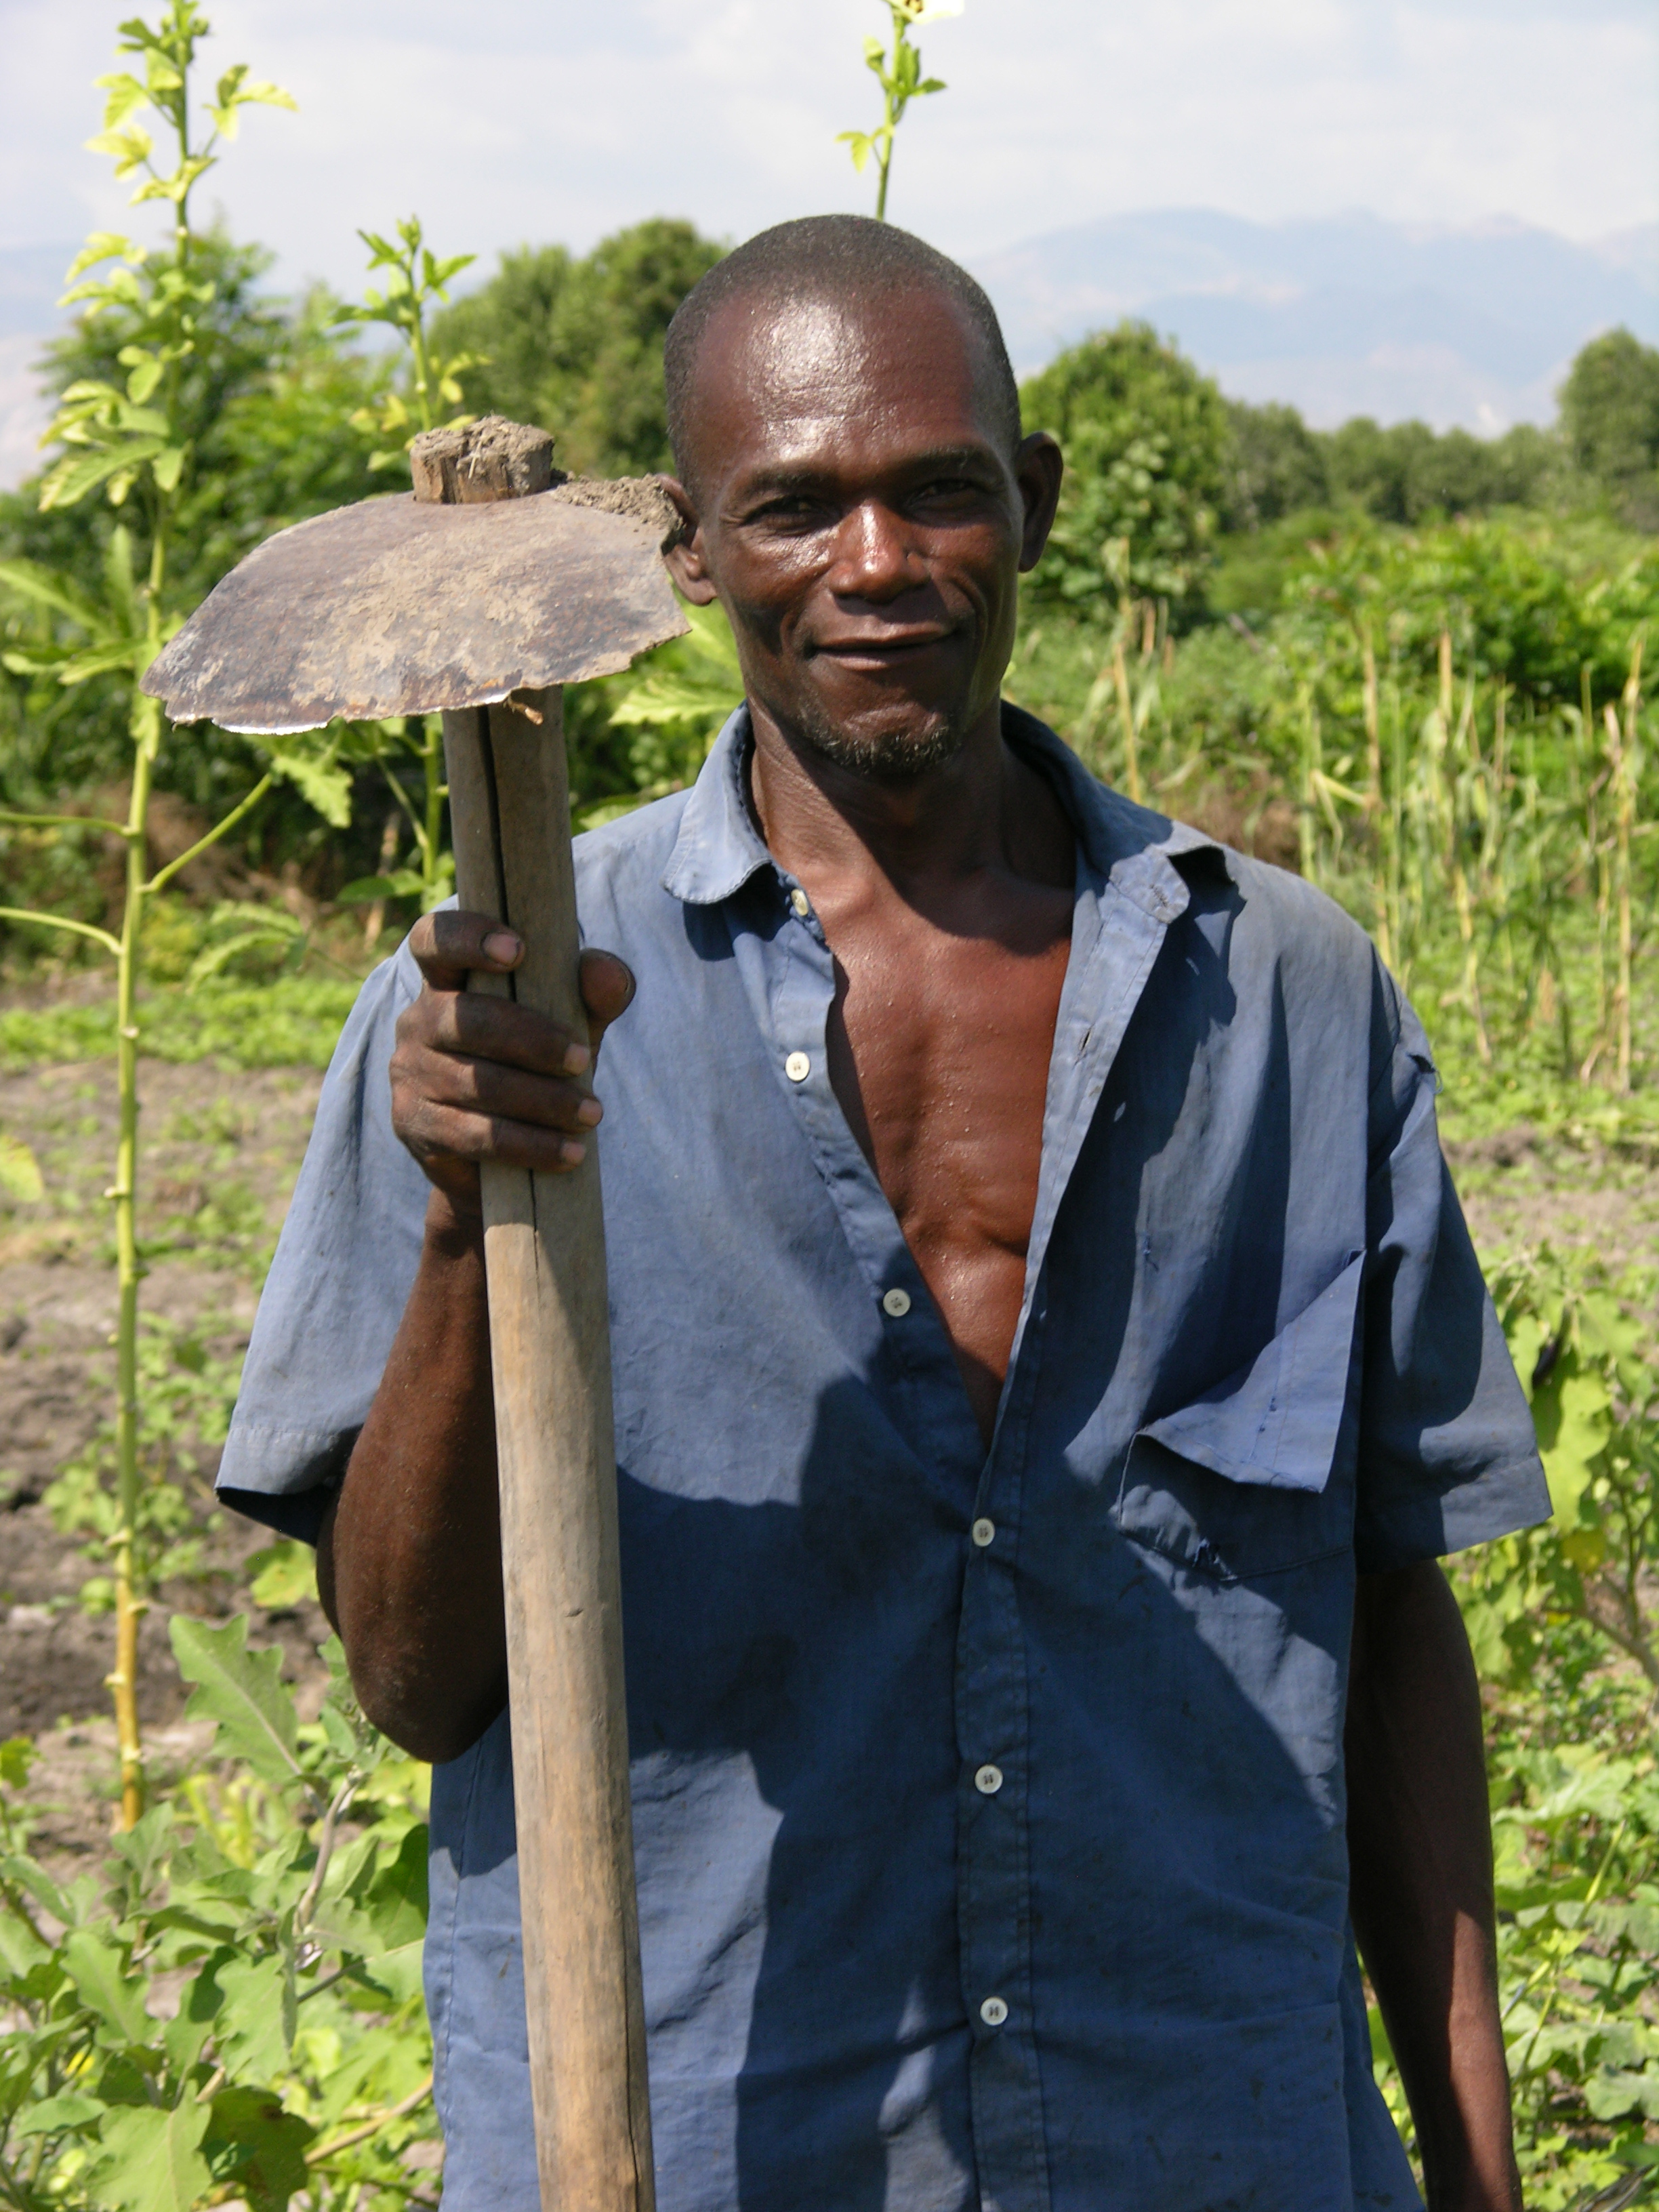 Farmers around the world rely on ECHO for training and best practices in sustainable farming techniques.